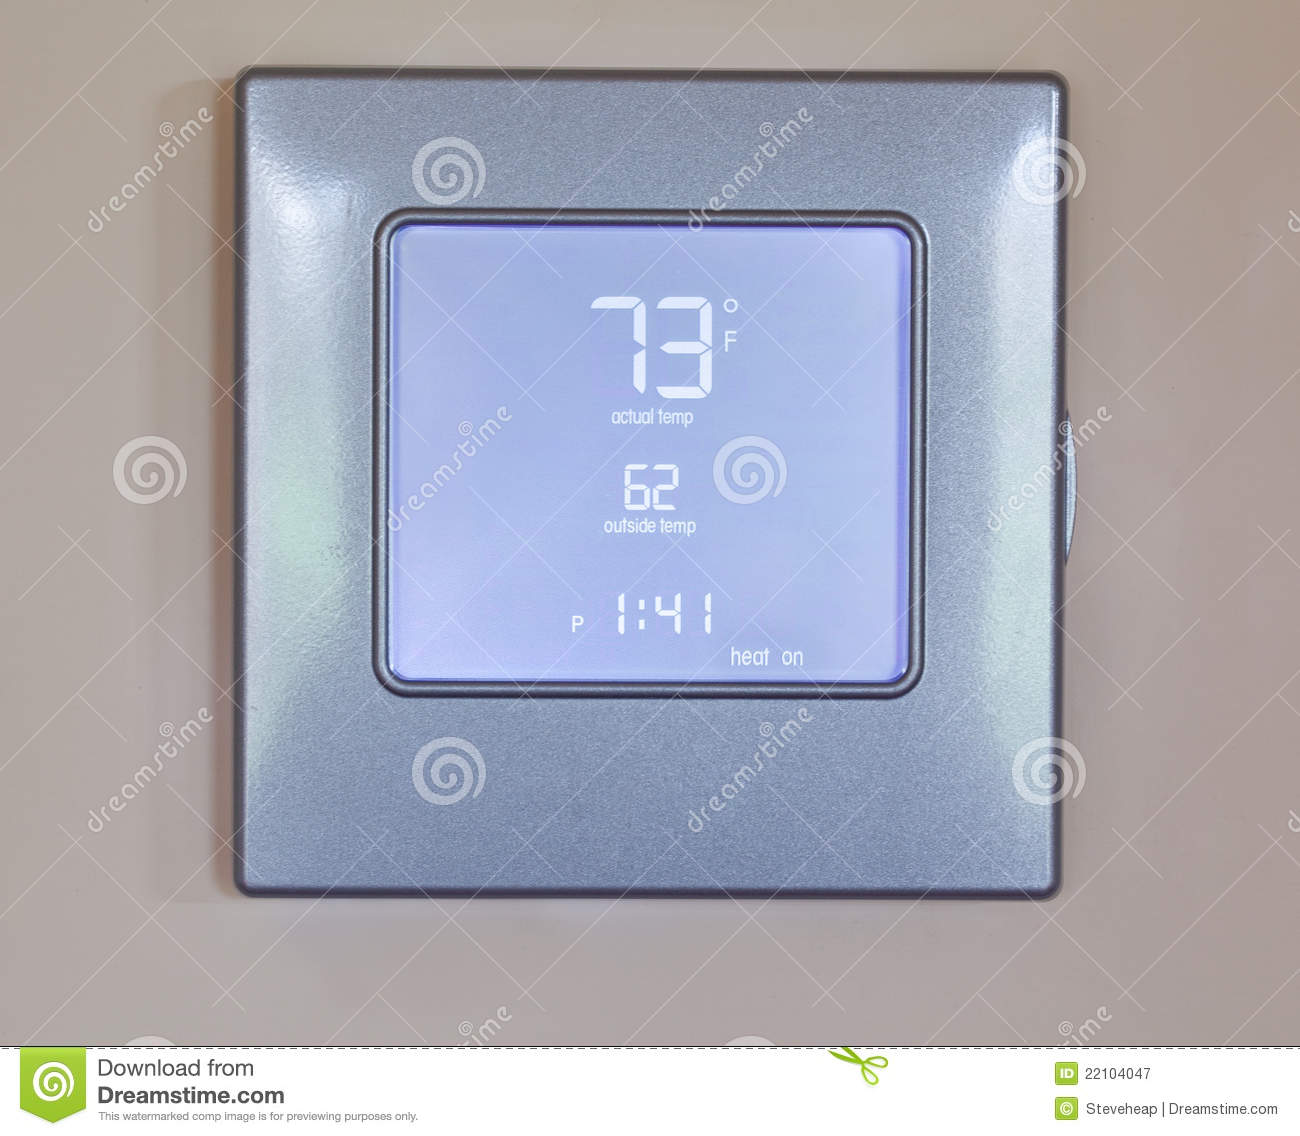 Electronic thermostat with blue LCD screen for controlling air  #83A328